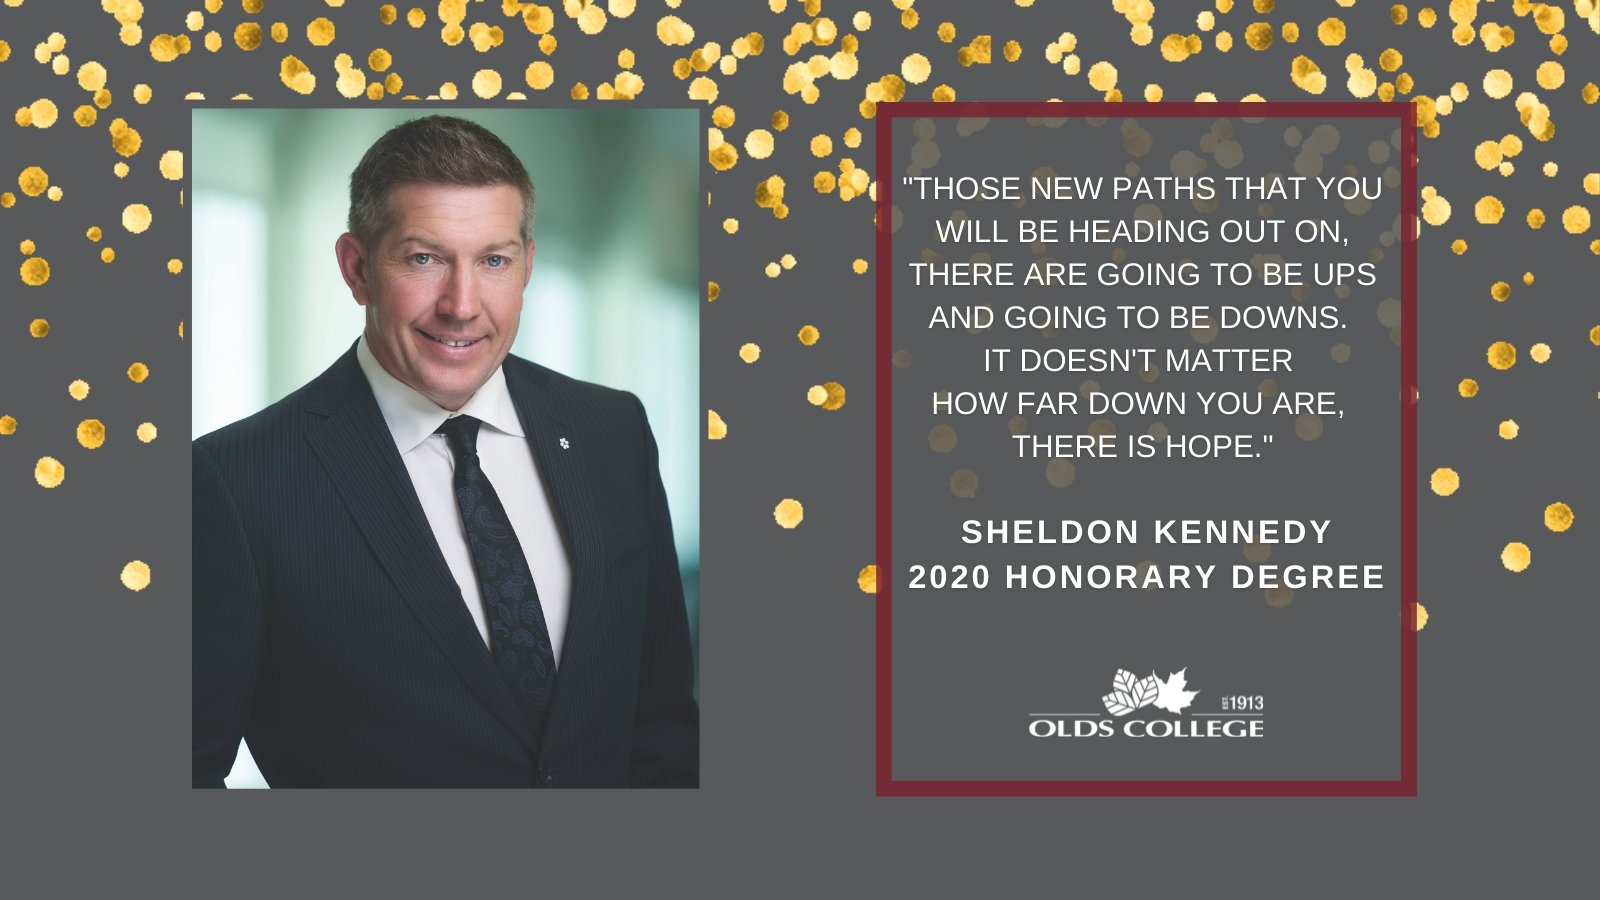 Our co-founder, Sheldon Kennedy, receives Olds College honorary degree